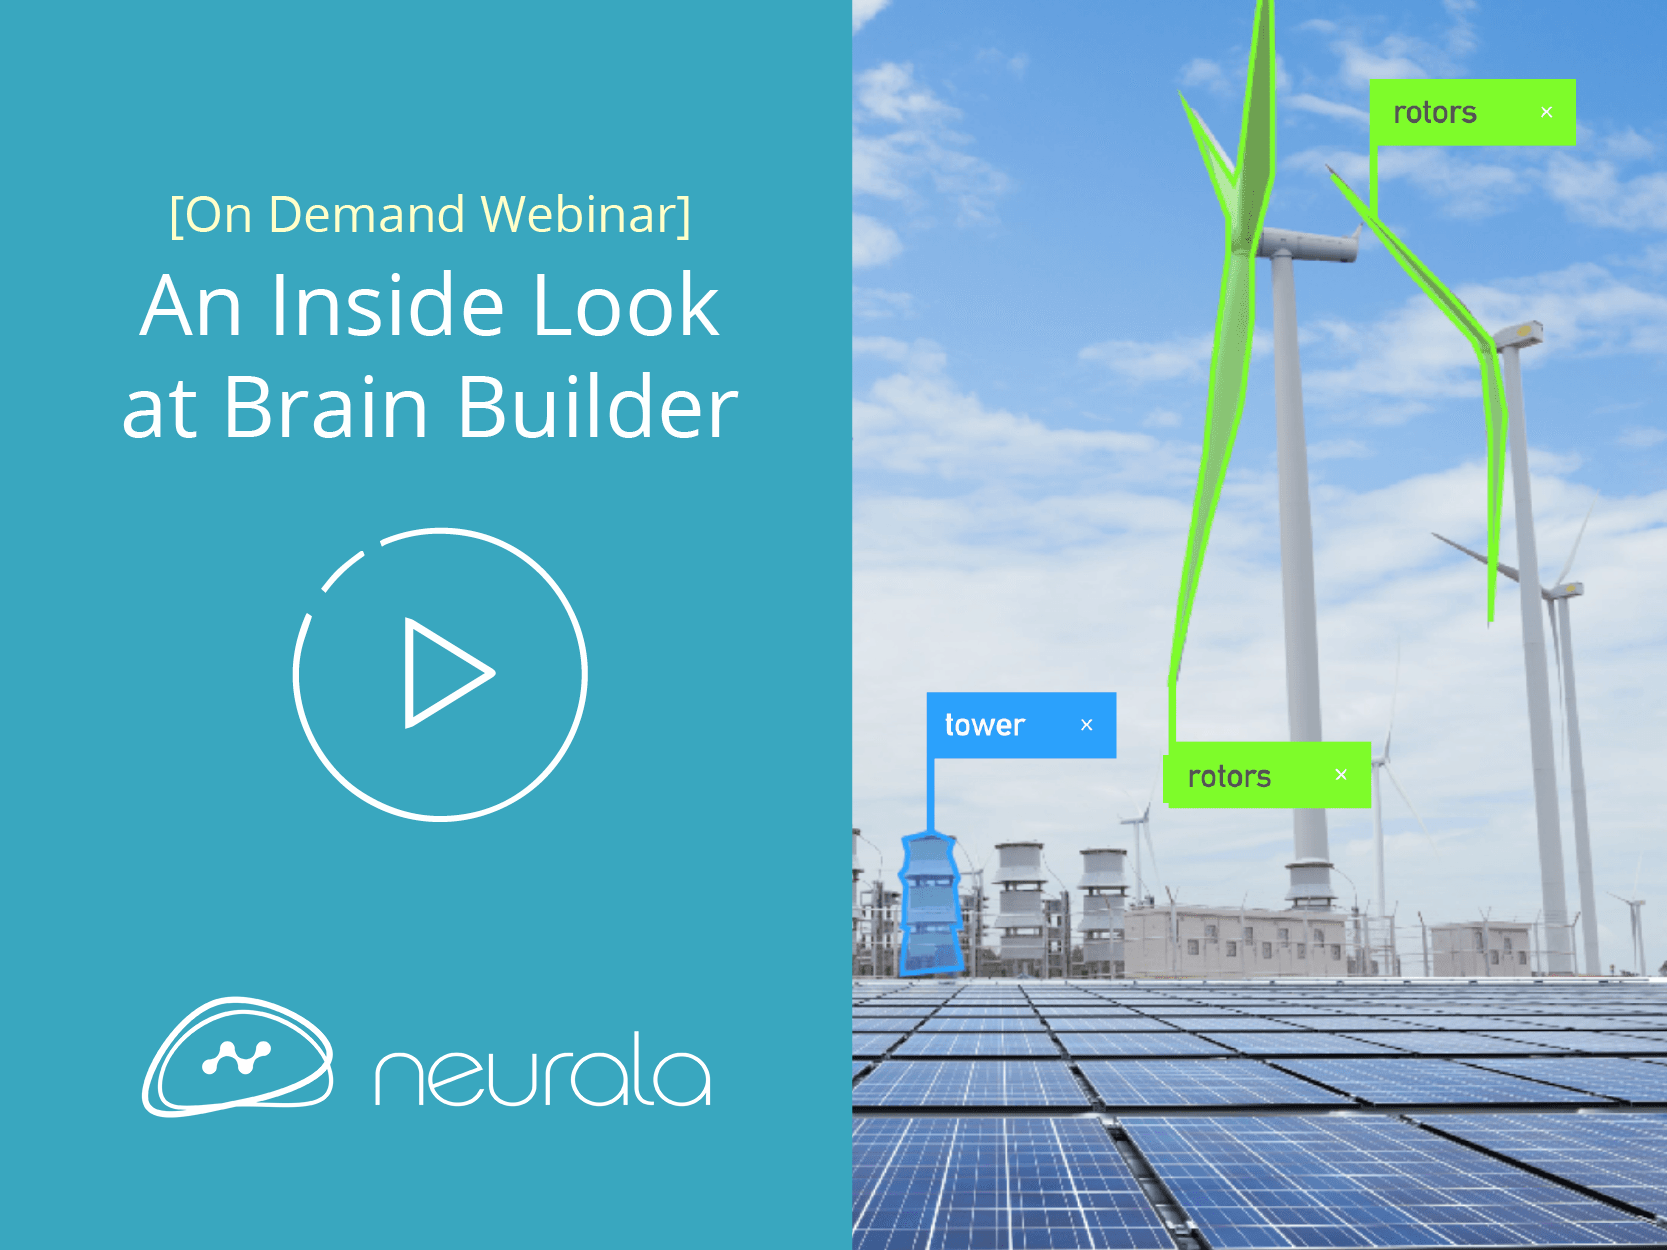 An Insider Look at Brain Builder